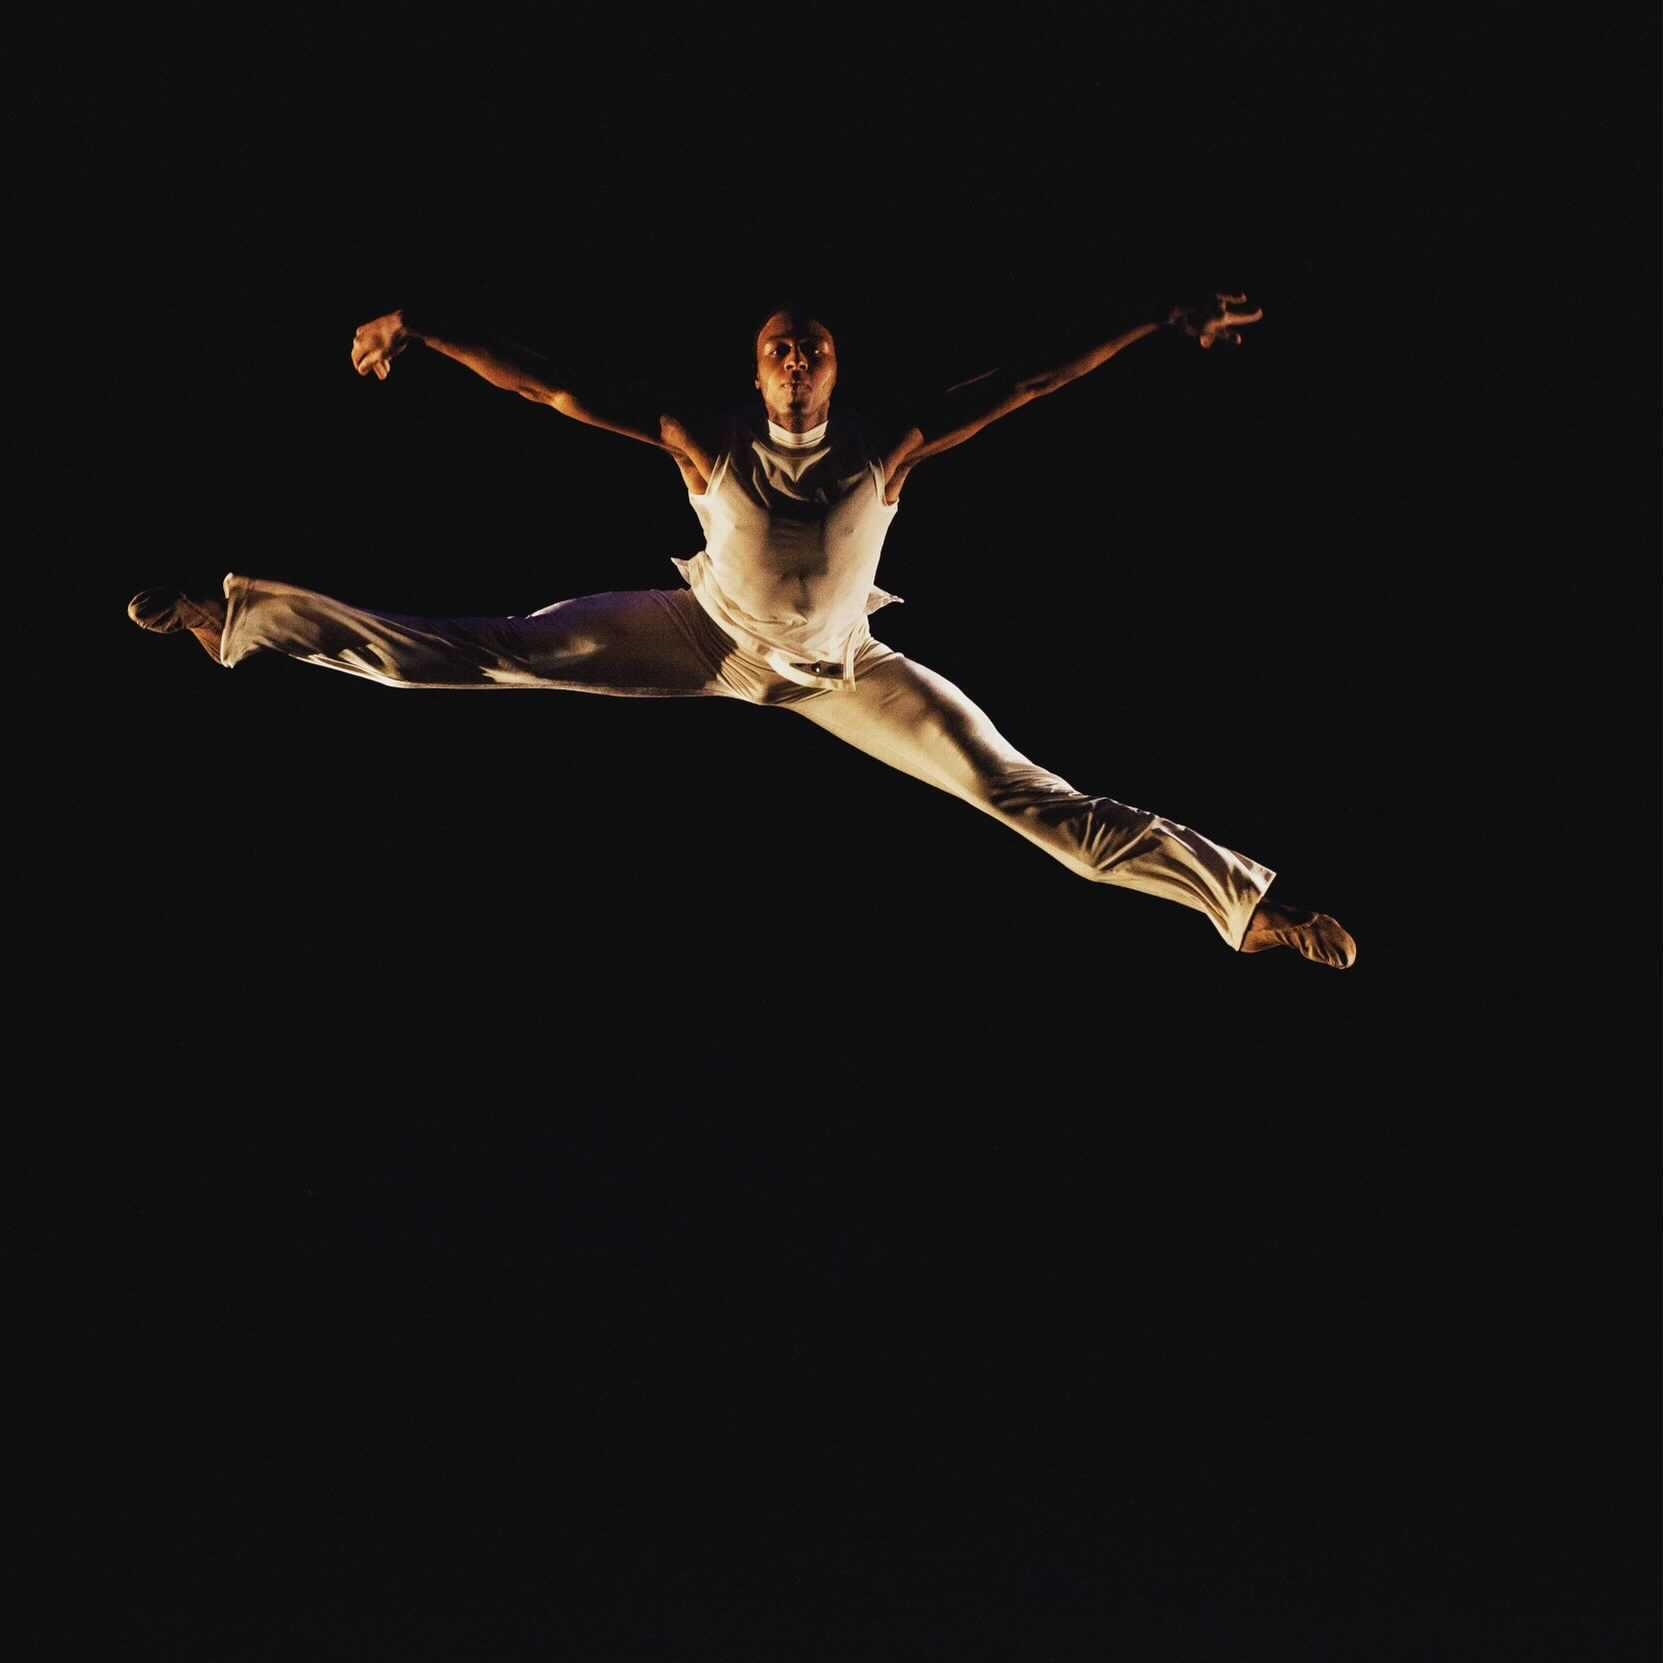 Joseph A. Watson II was a dancer for the Aspen Santa Fe Ballet before becoming a police officer.